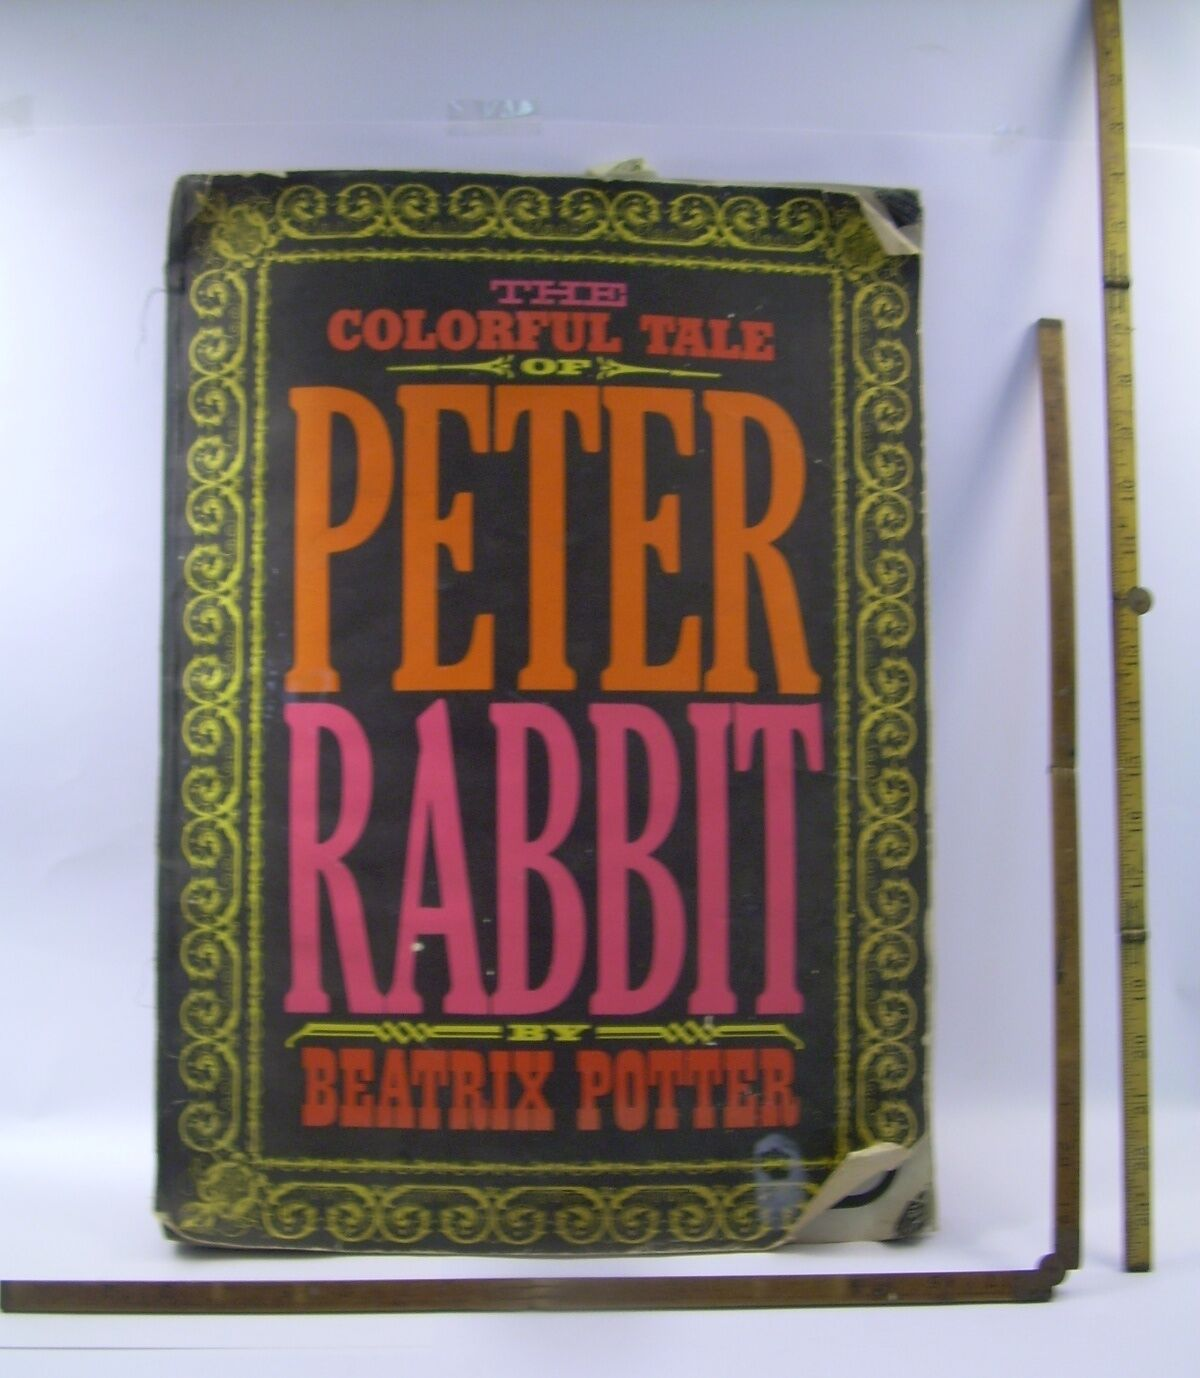 Farbeful Tale Peter Rabbit 1968 Giant FarbeING bk VINTAGE Posters Rare FOLIO ART